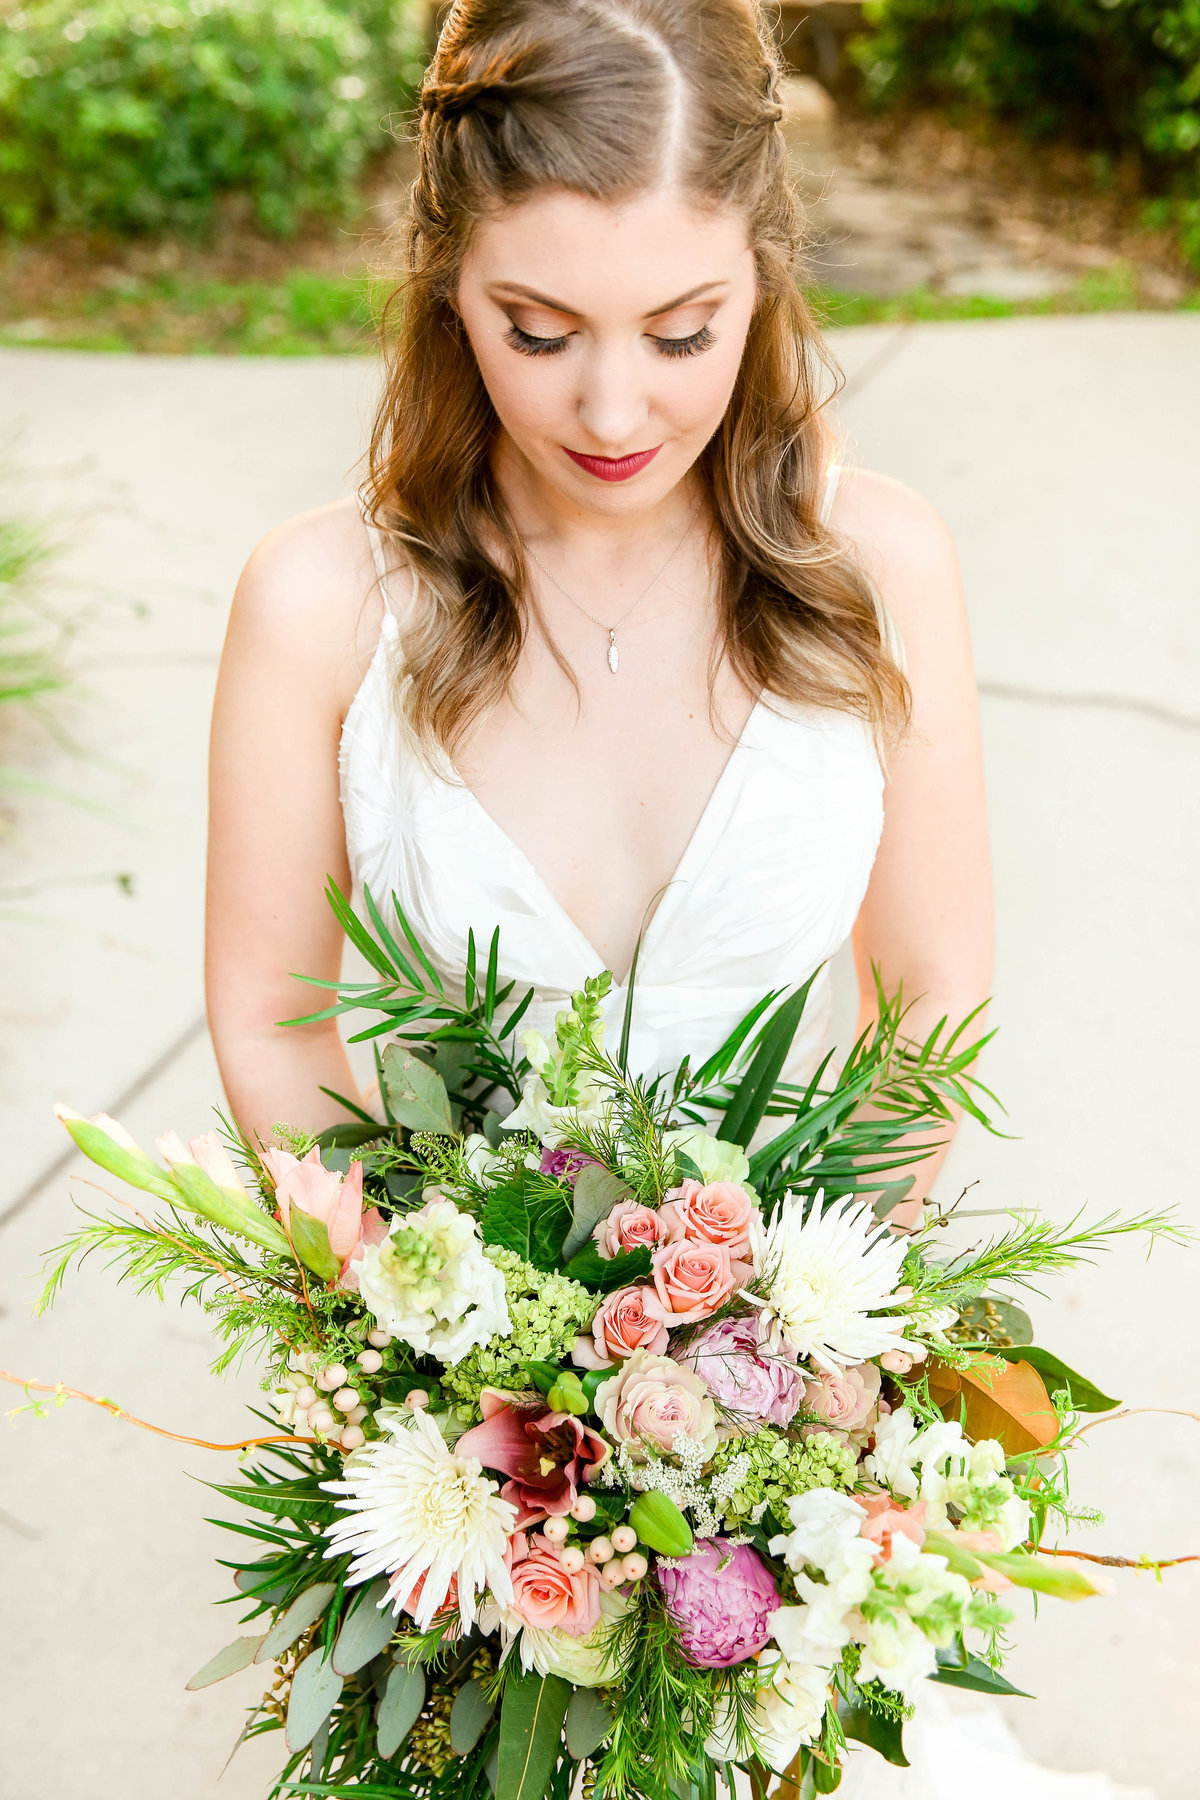 Bride with wedding day makeup in white wedding gown holds large bridal bouquet with lots of greenery and white flowers